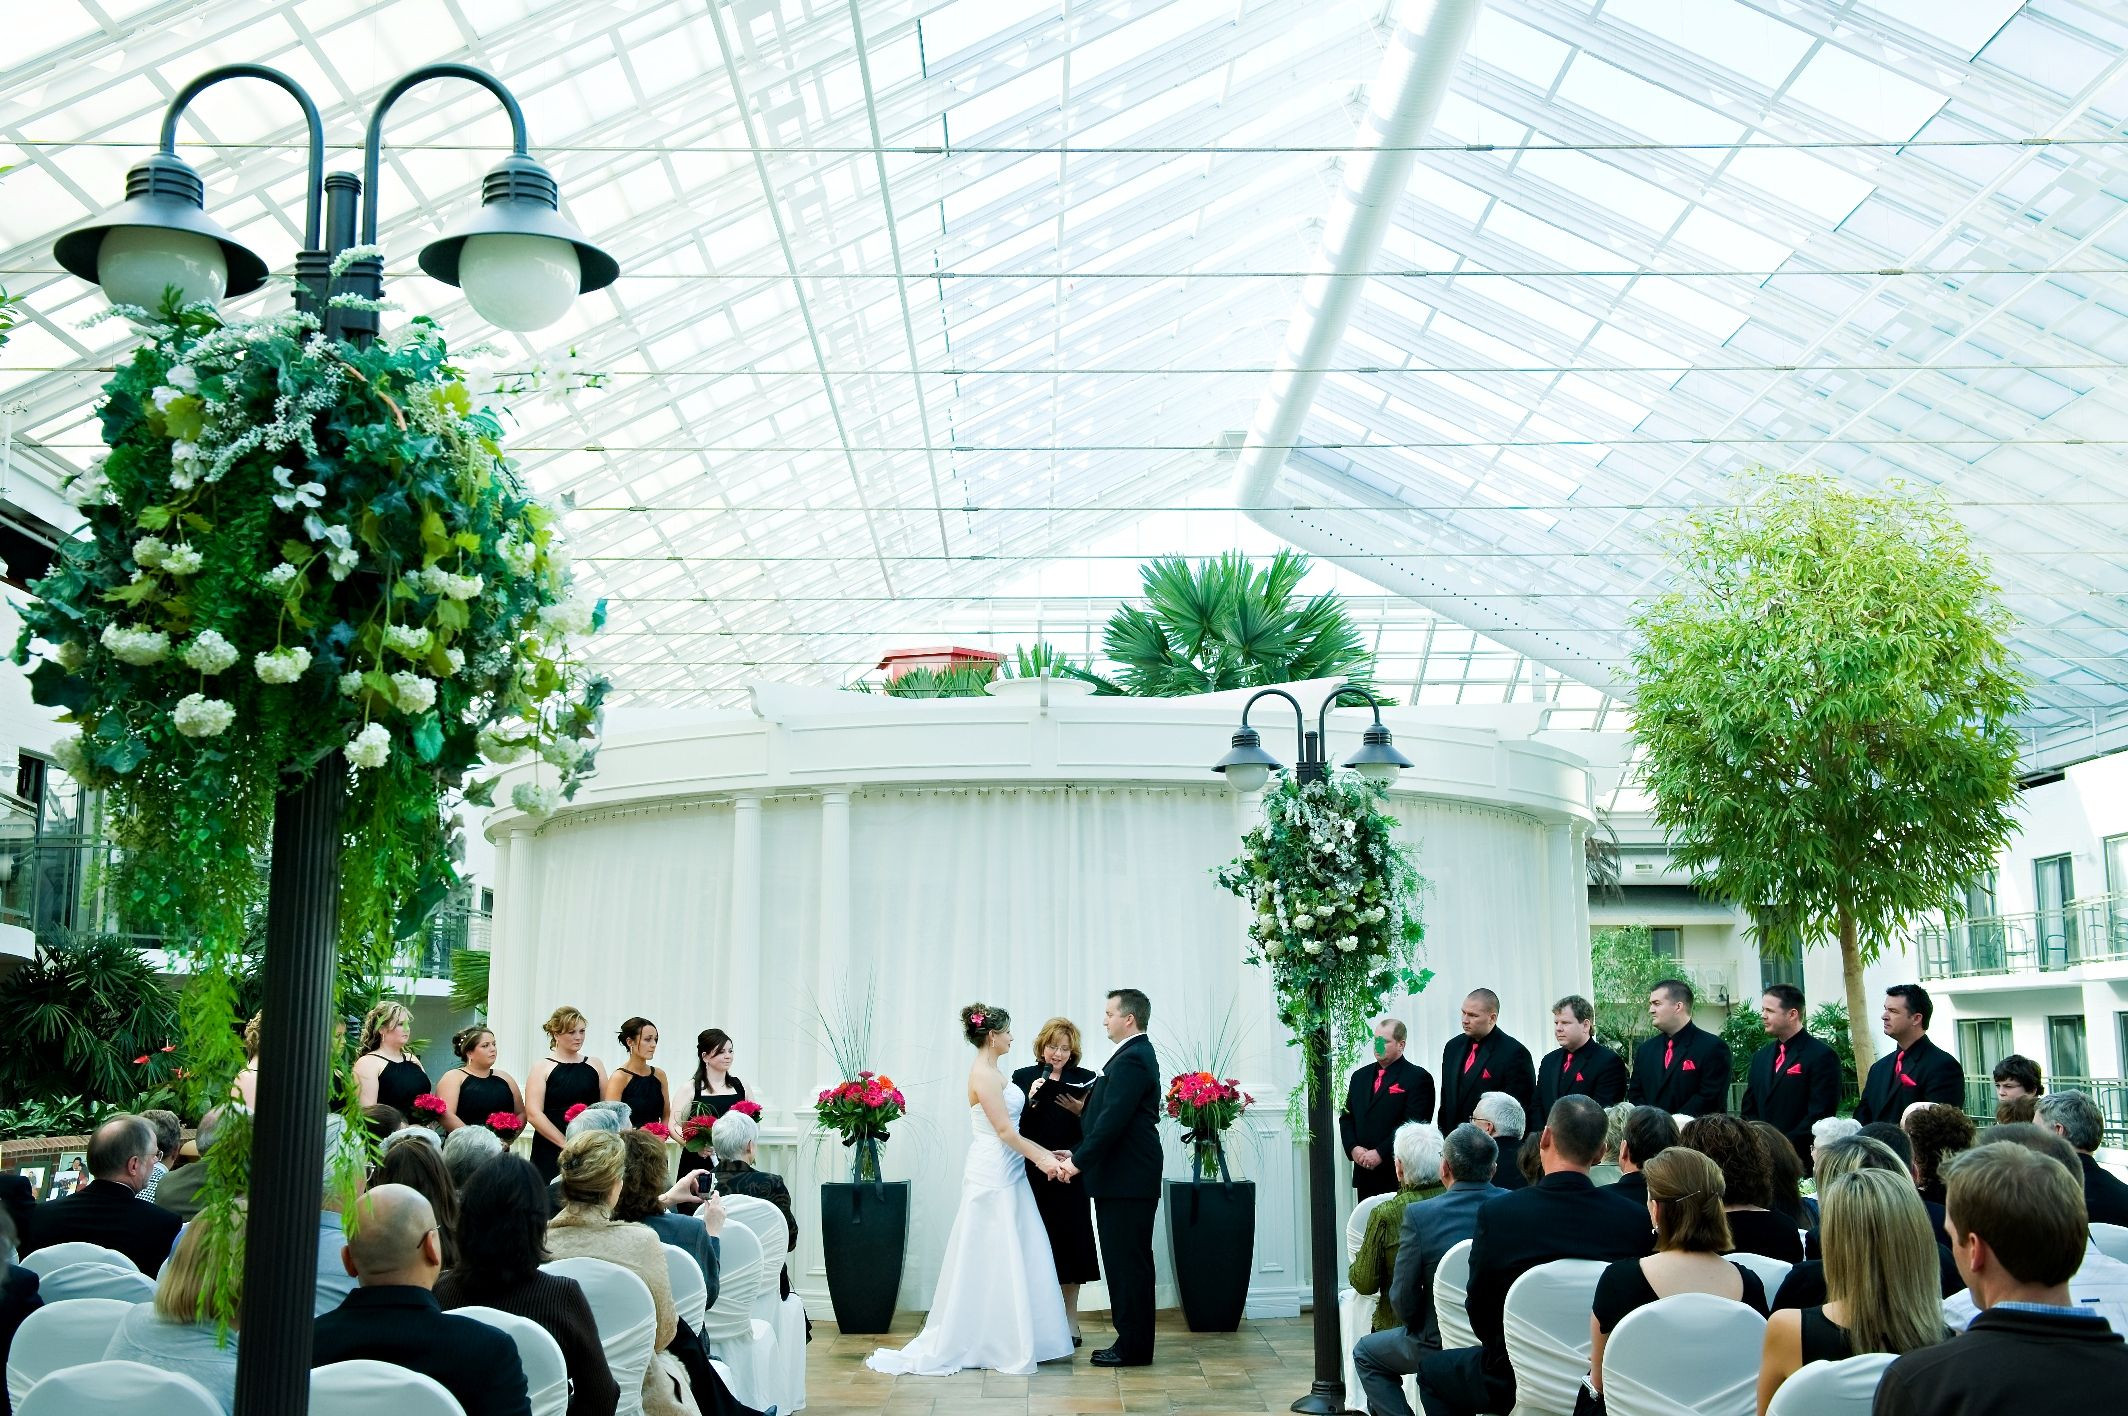 Look no further for the perfect wedding spot.  Our Atrium features palm trees and an array of tropical foliage that is warm year round